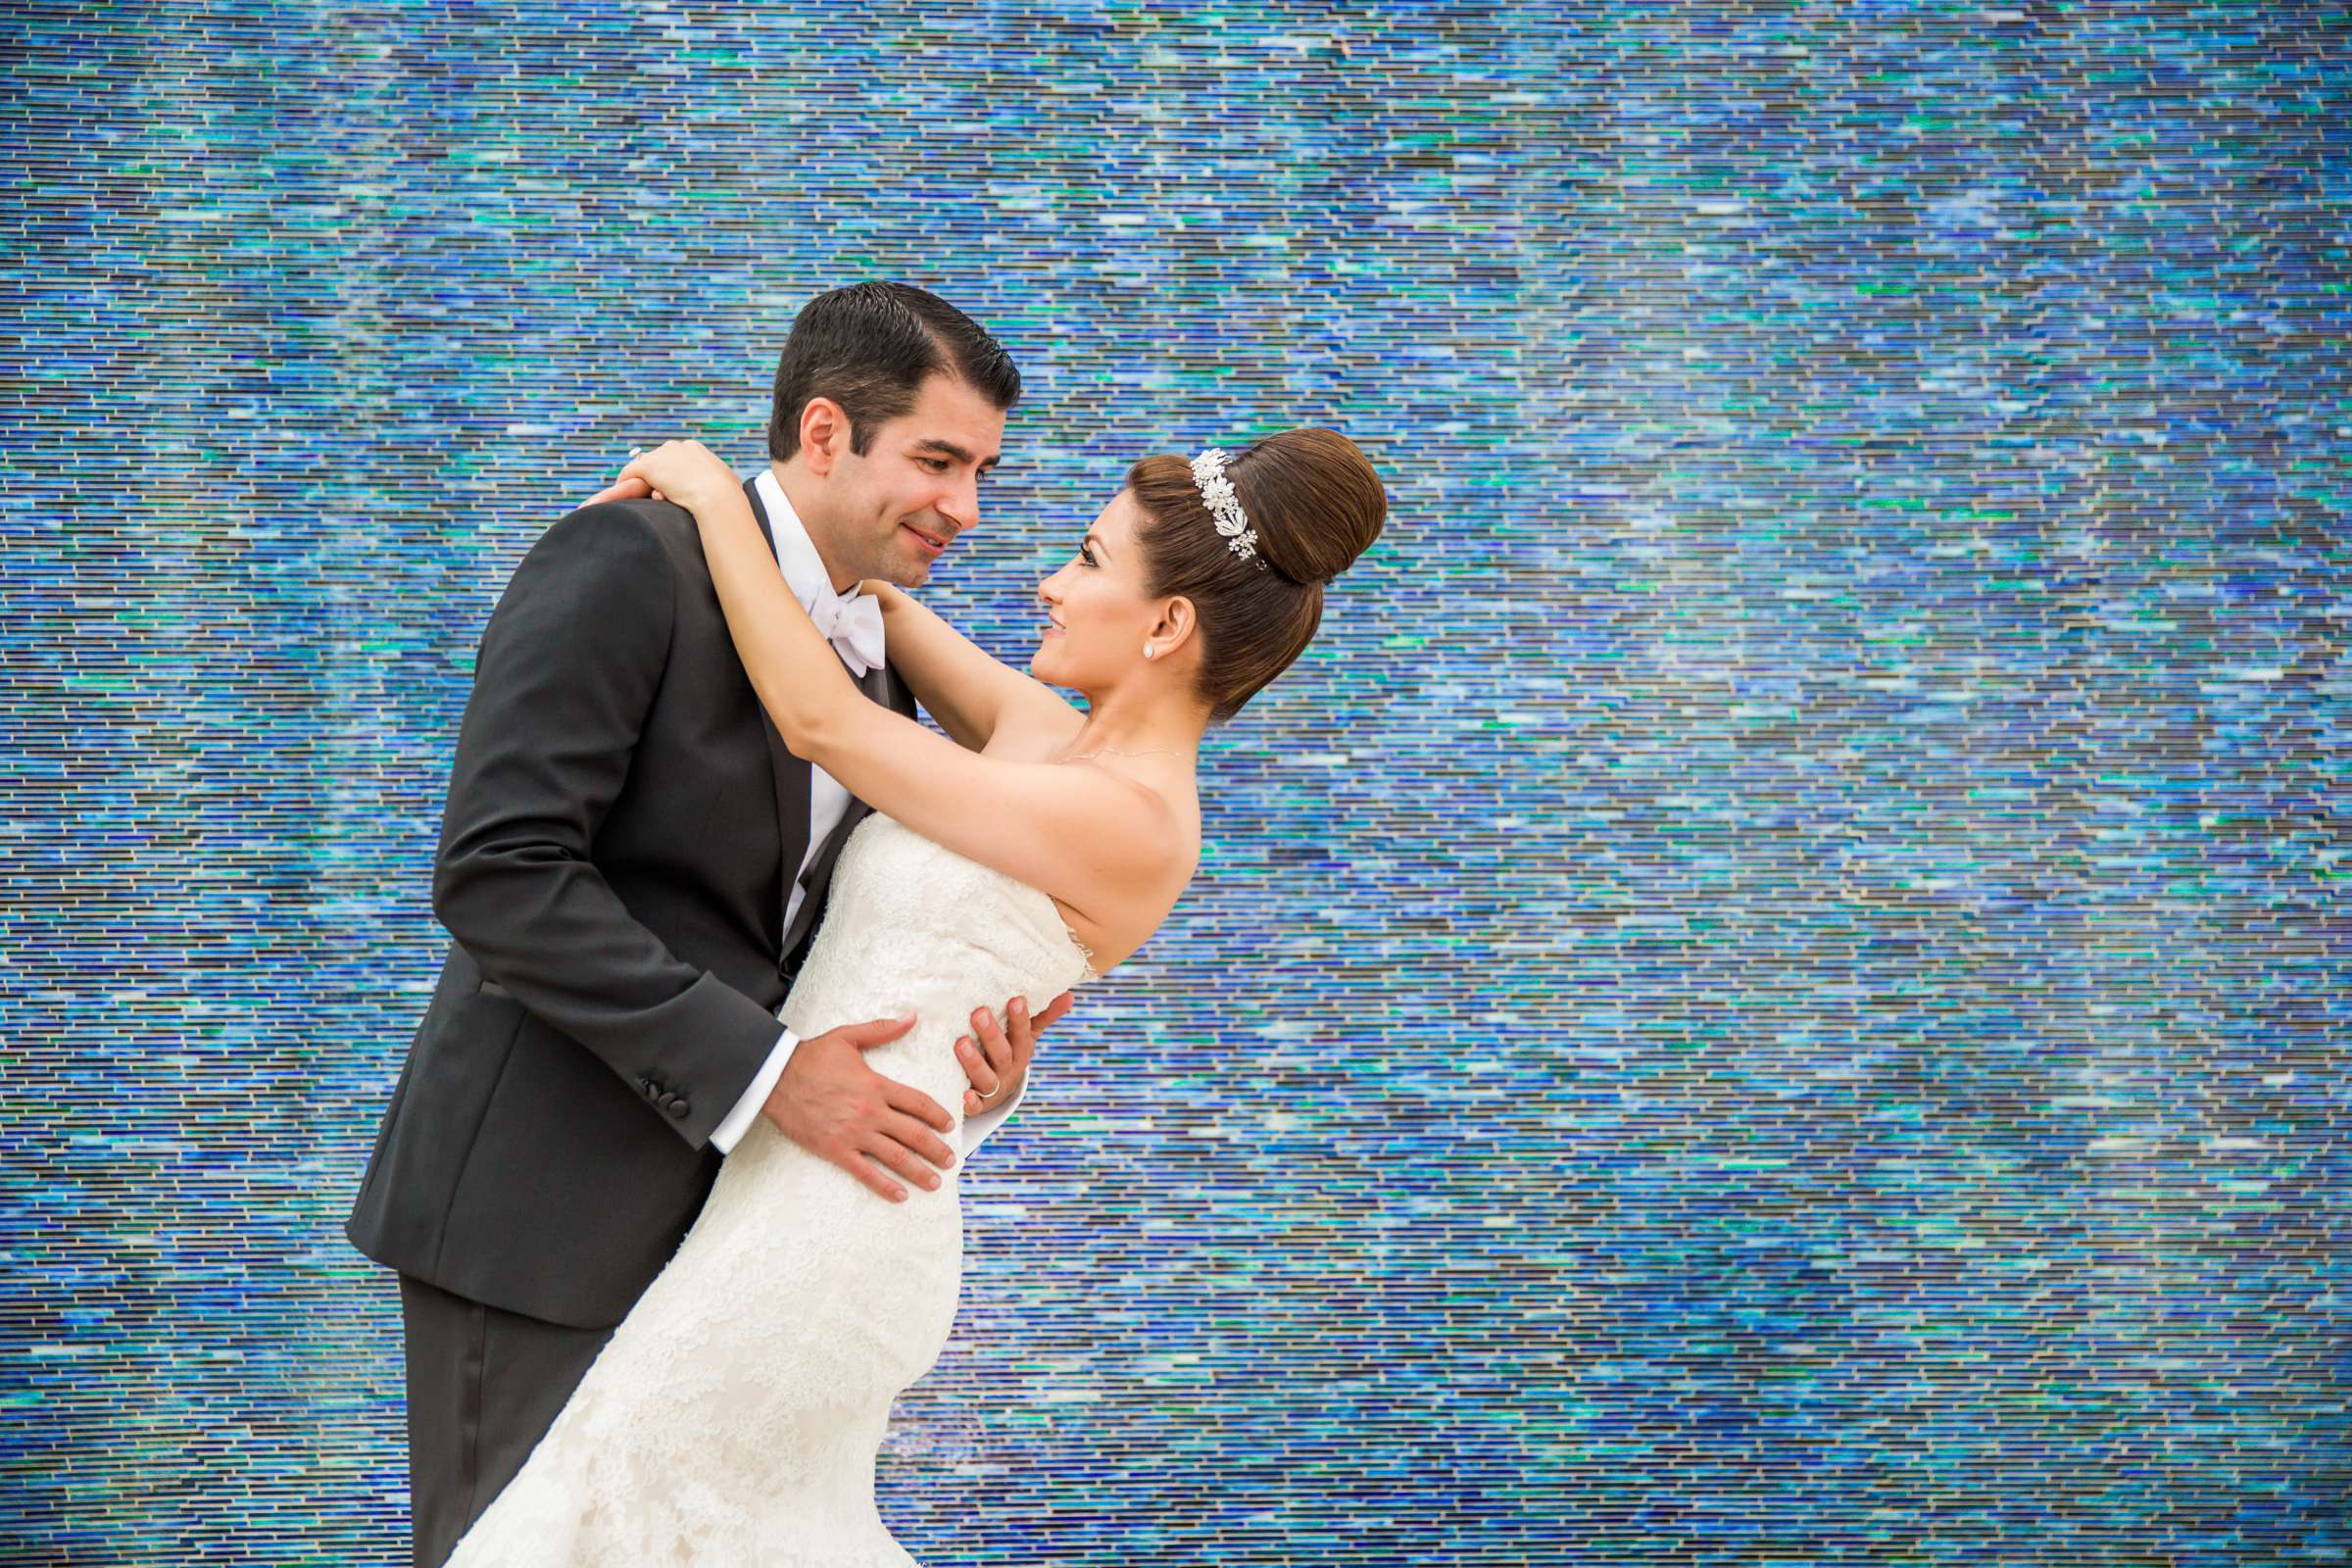 Wedding coordinated by Lavish Weddings, Anya and Barry Wedding Photo #1 by True Photography